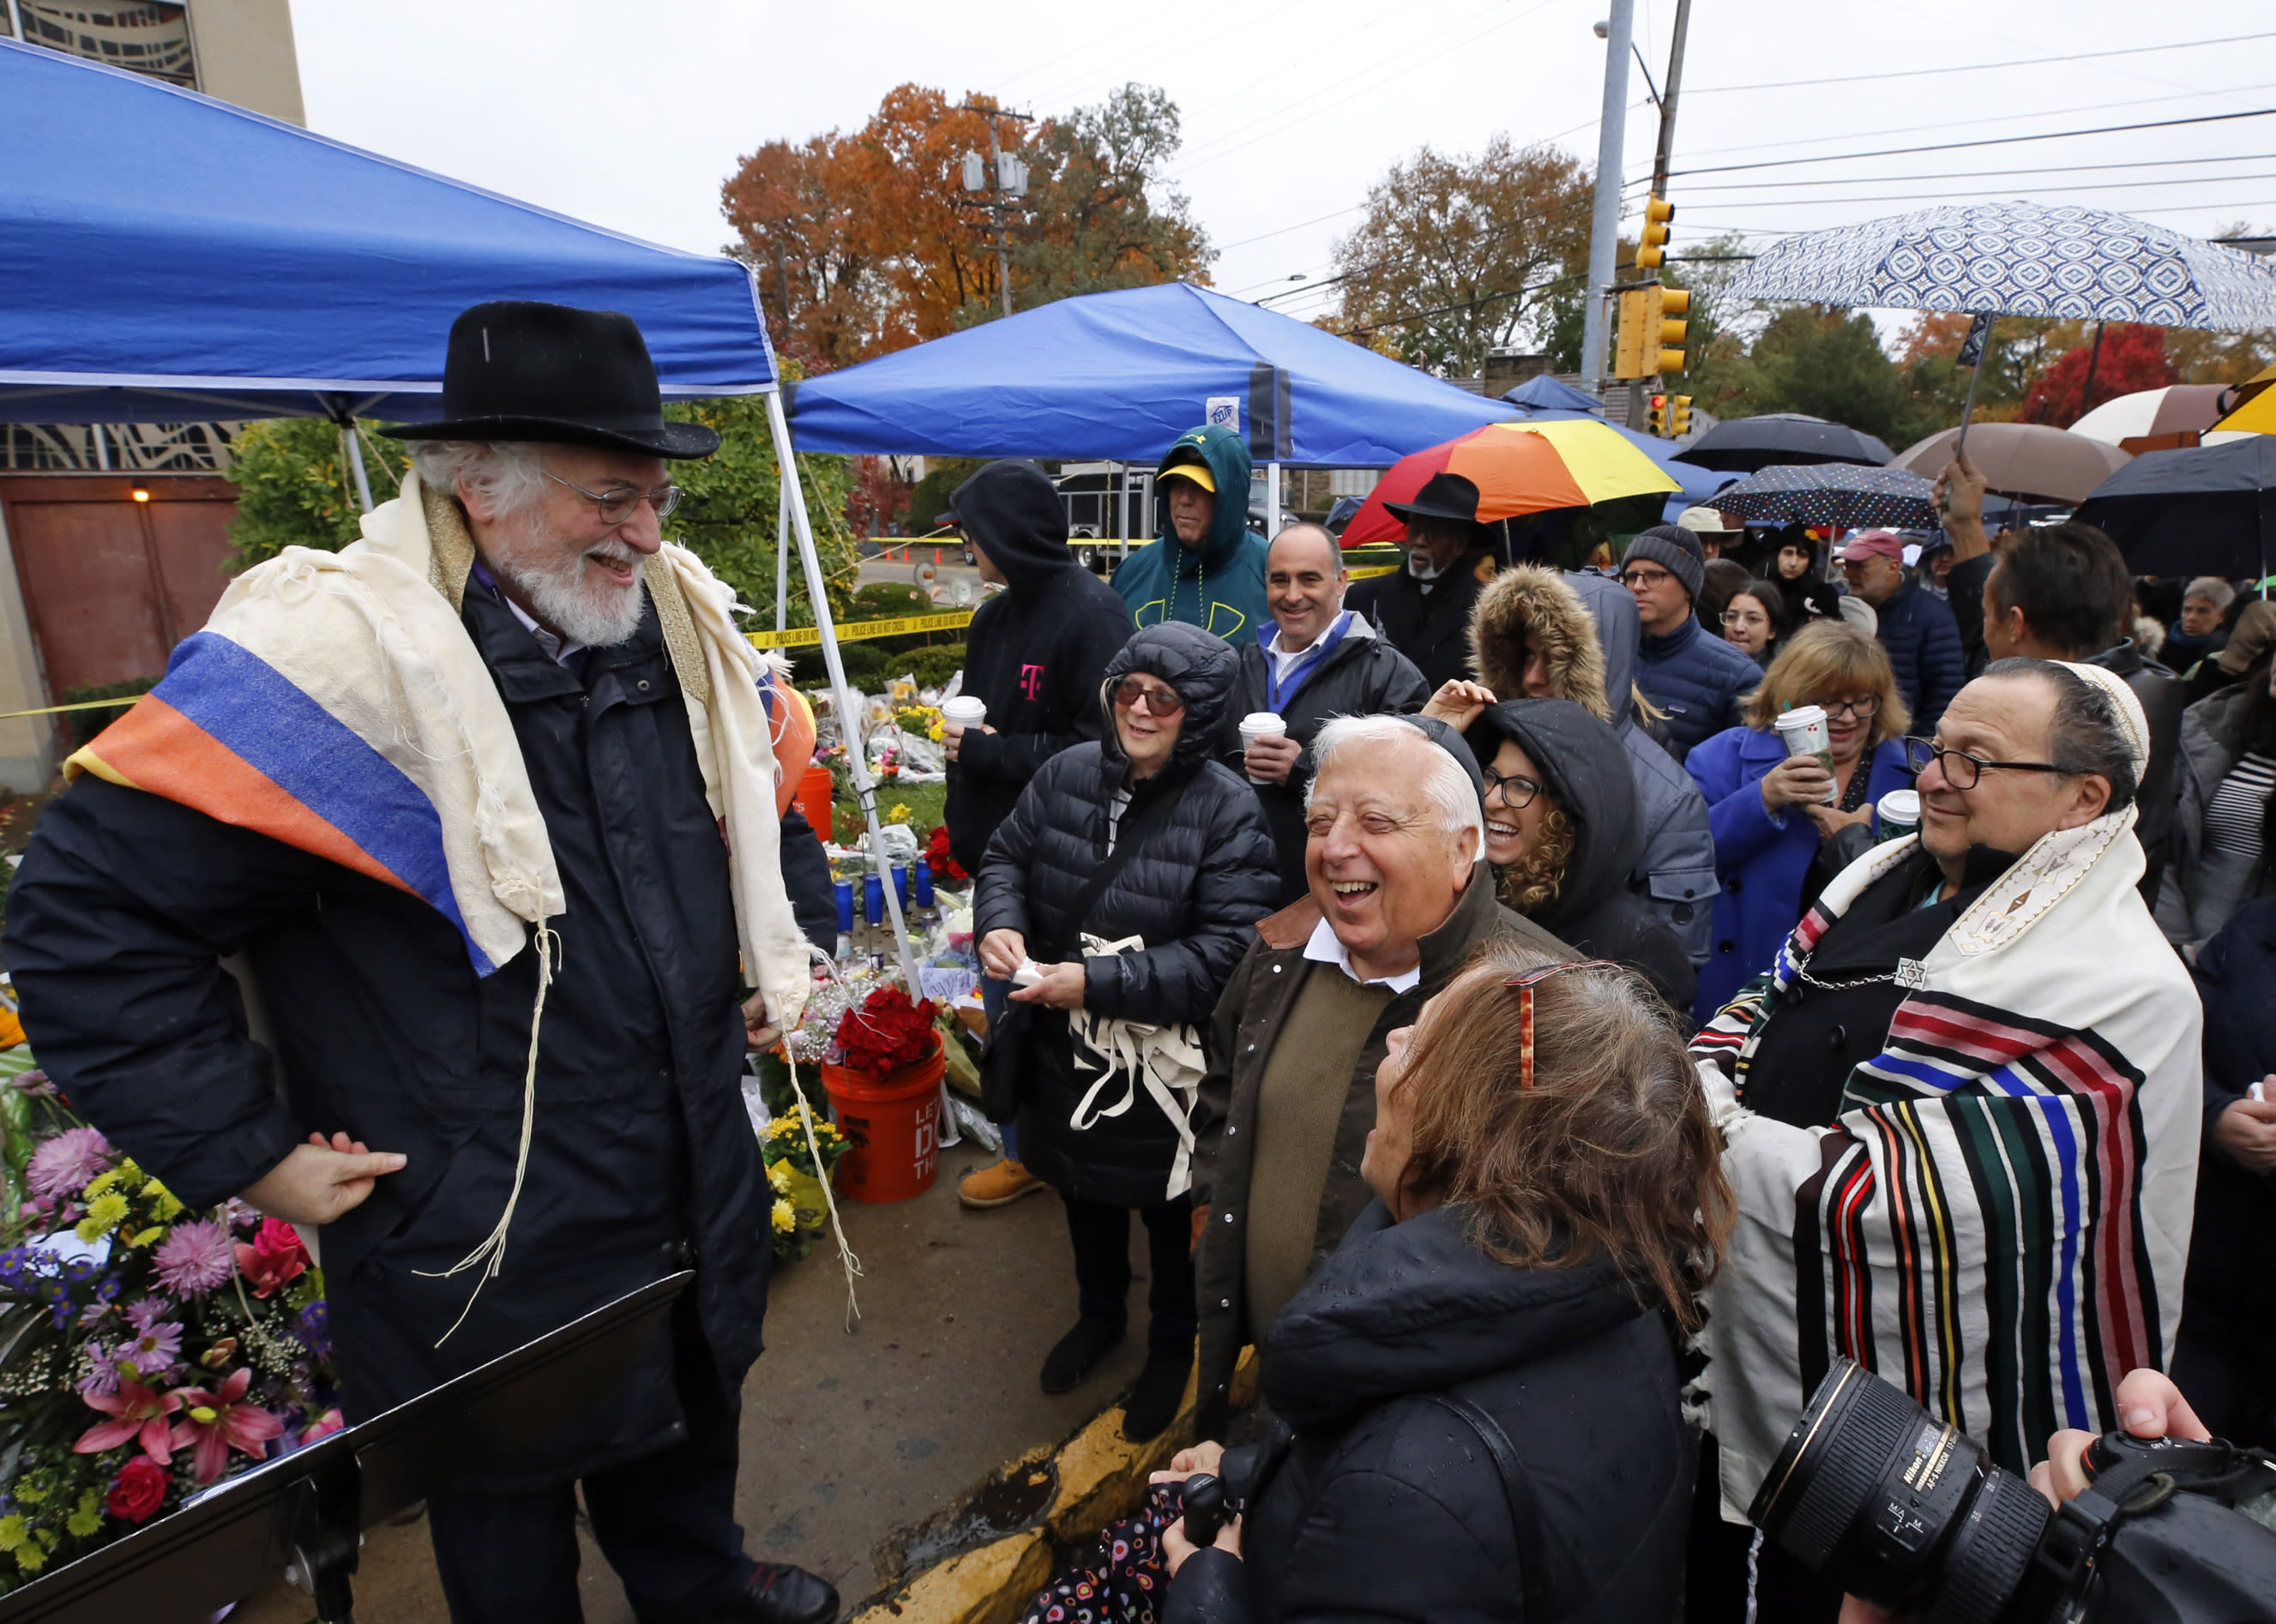 """Rabbi Chuck Diamond, left, a former Rabbi at the Tree of Life Synagogue, shares a laugh with worshipers before leading a Shabbat service outside the Tree of Life Synagogue, Saturday, Nov. 3, 2018 in Pittsburgh. About 100 people gathered in a cold drizzle for what was called a """"healing service"""" outside the synagogue that was the scene of a mass shooting a week ago. (AP Photo/Gene J. Puskar)"""